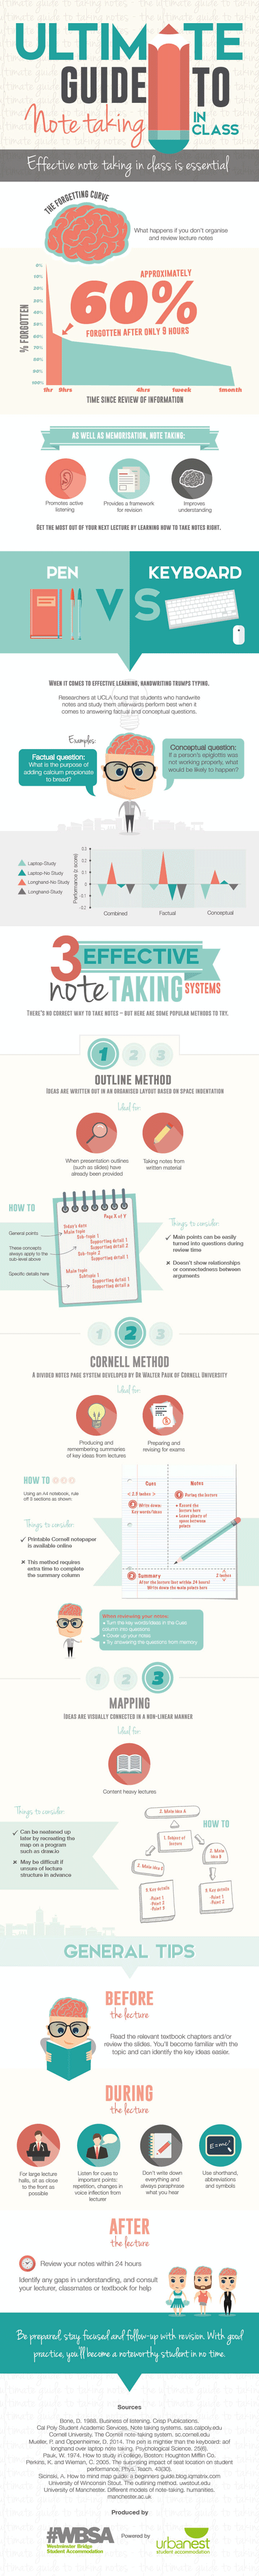 Guide to Note Taking in Class Infographic